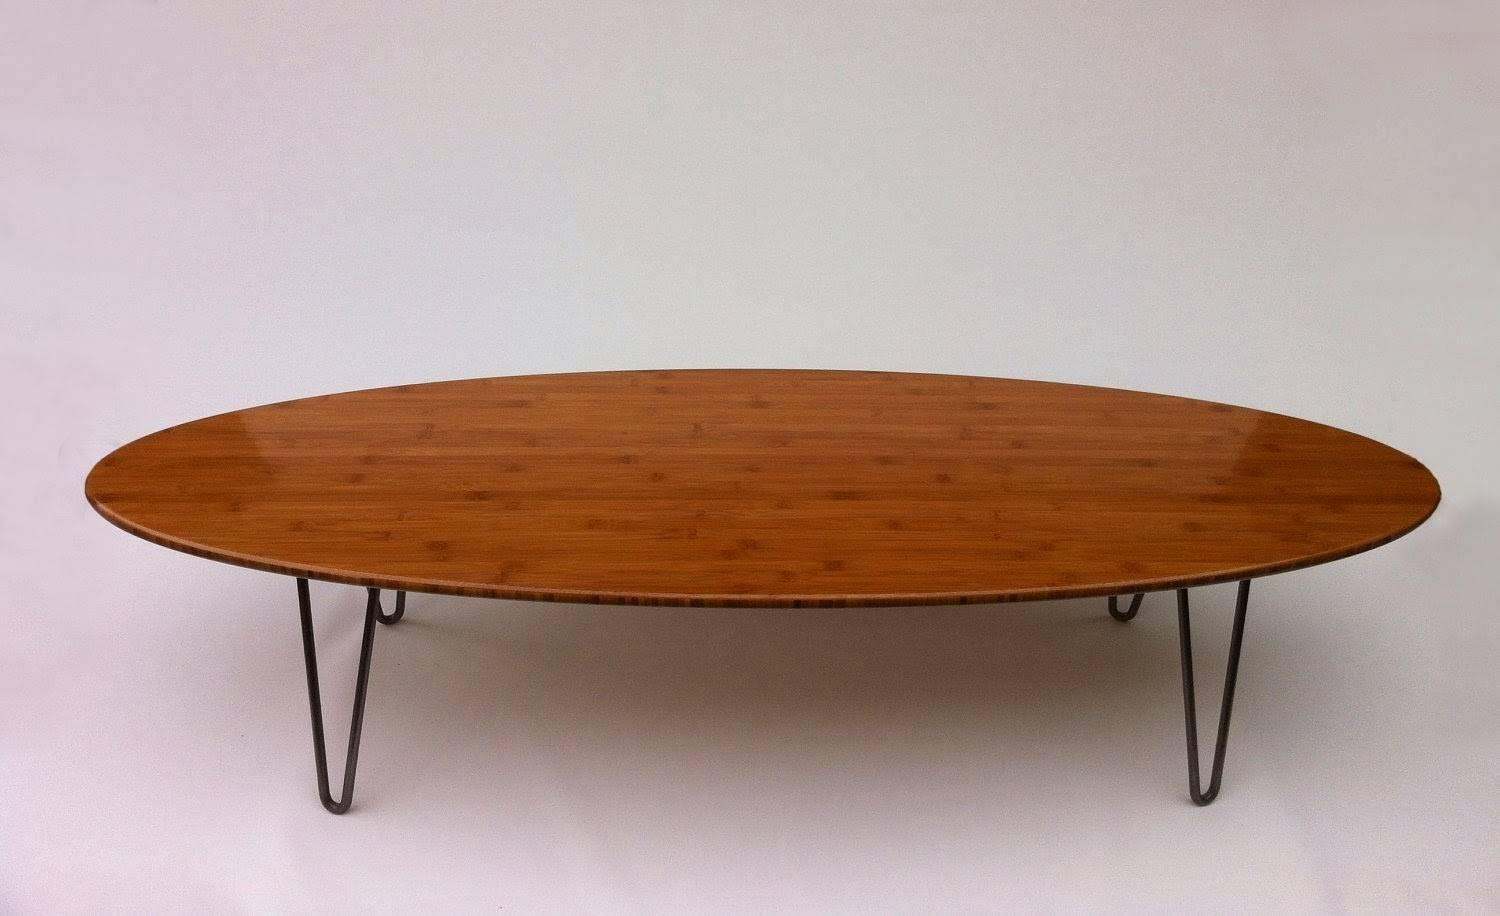 Furniture: Small Oval Coffee Table | Target Living Room Tables Intended For Small Wood Coffee Tables (View 20 of 30)